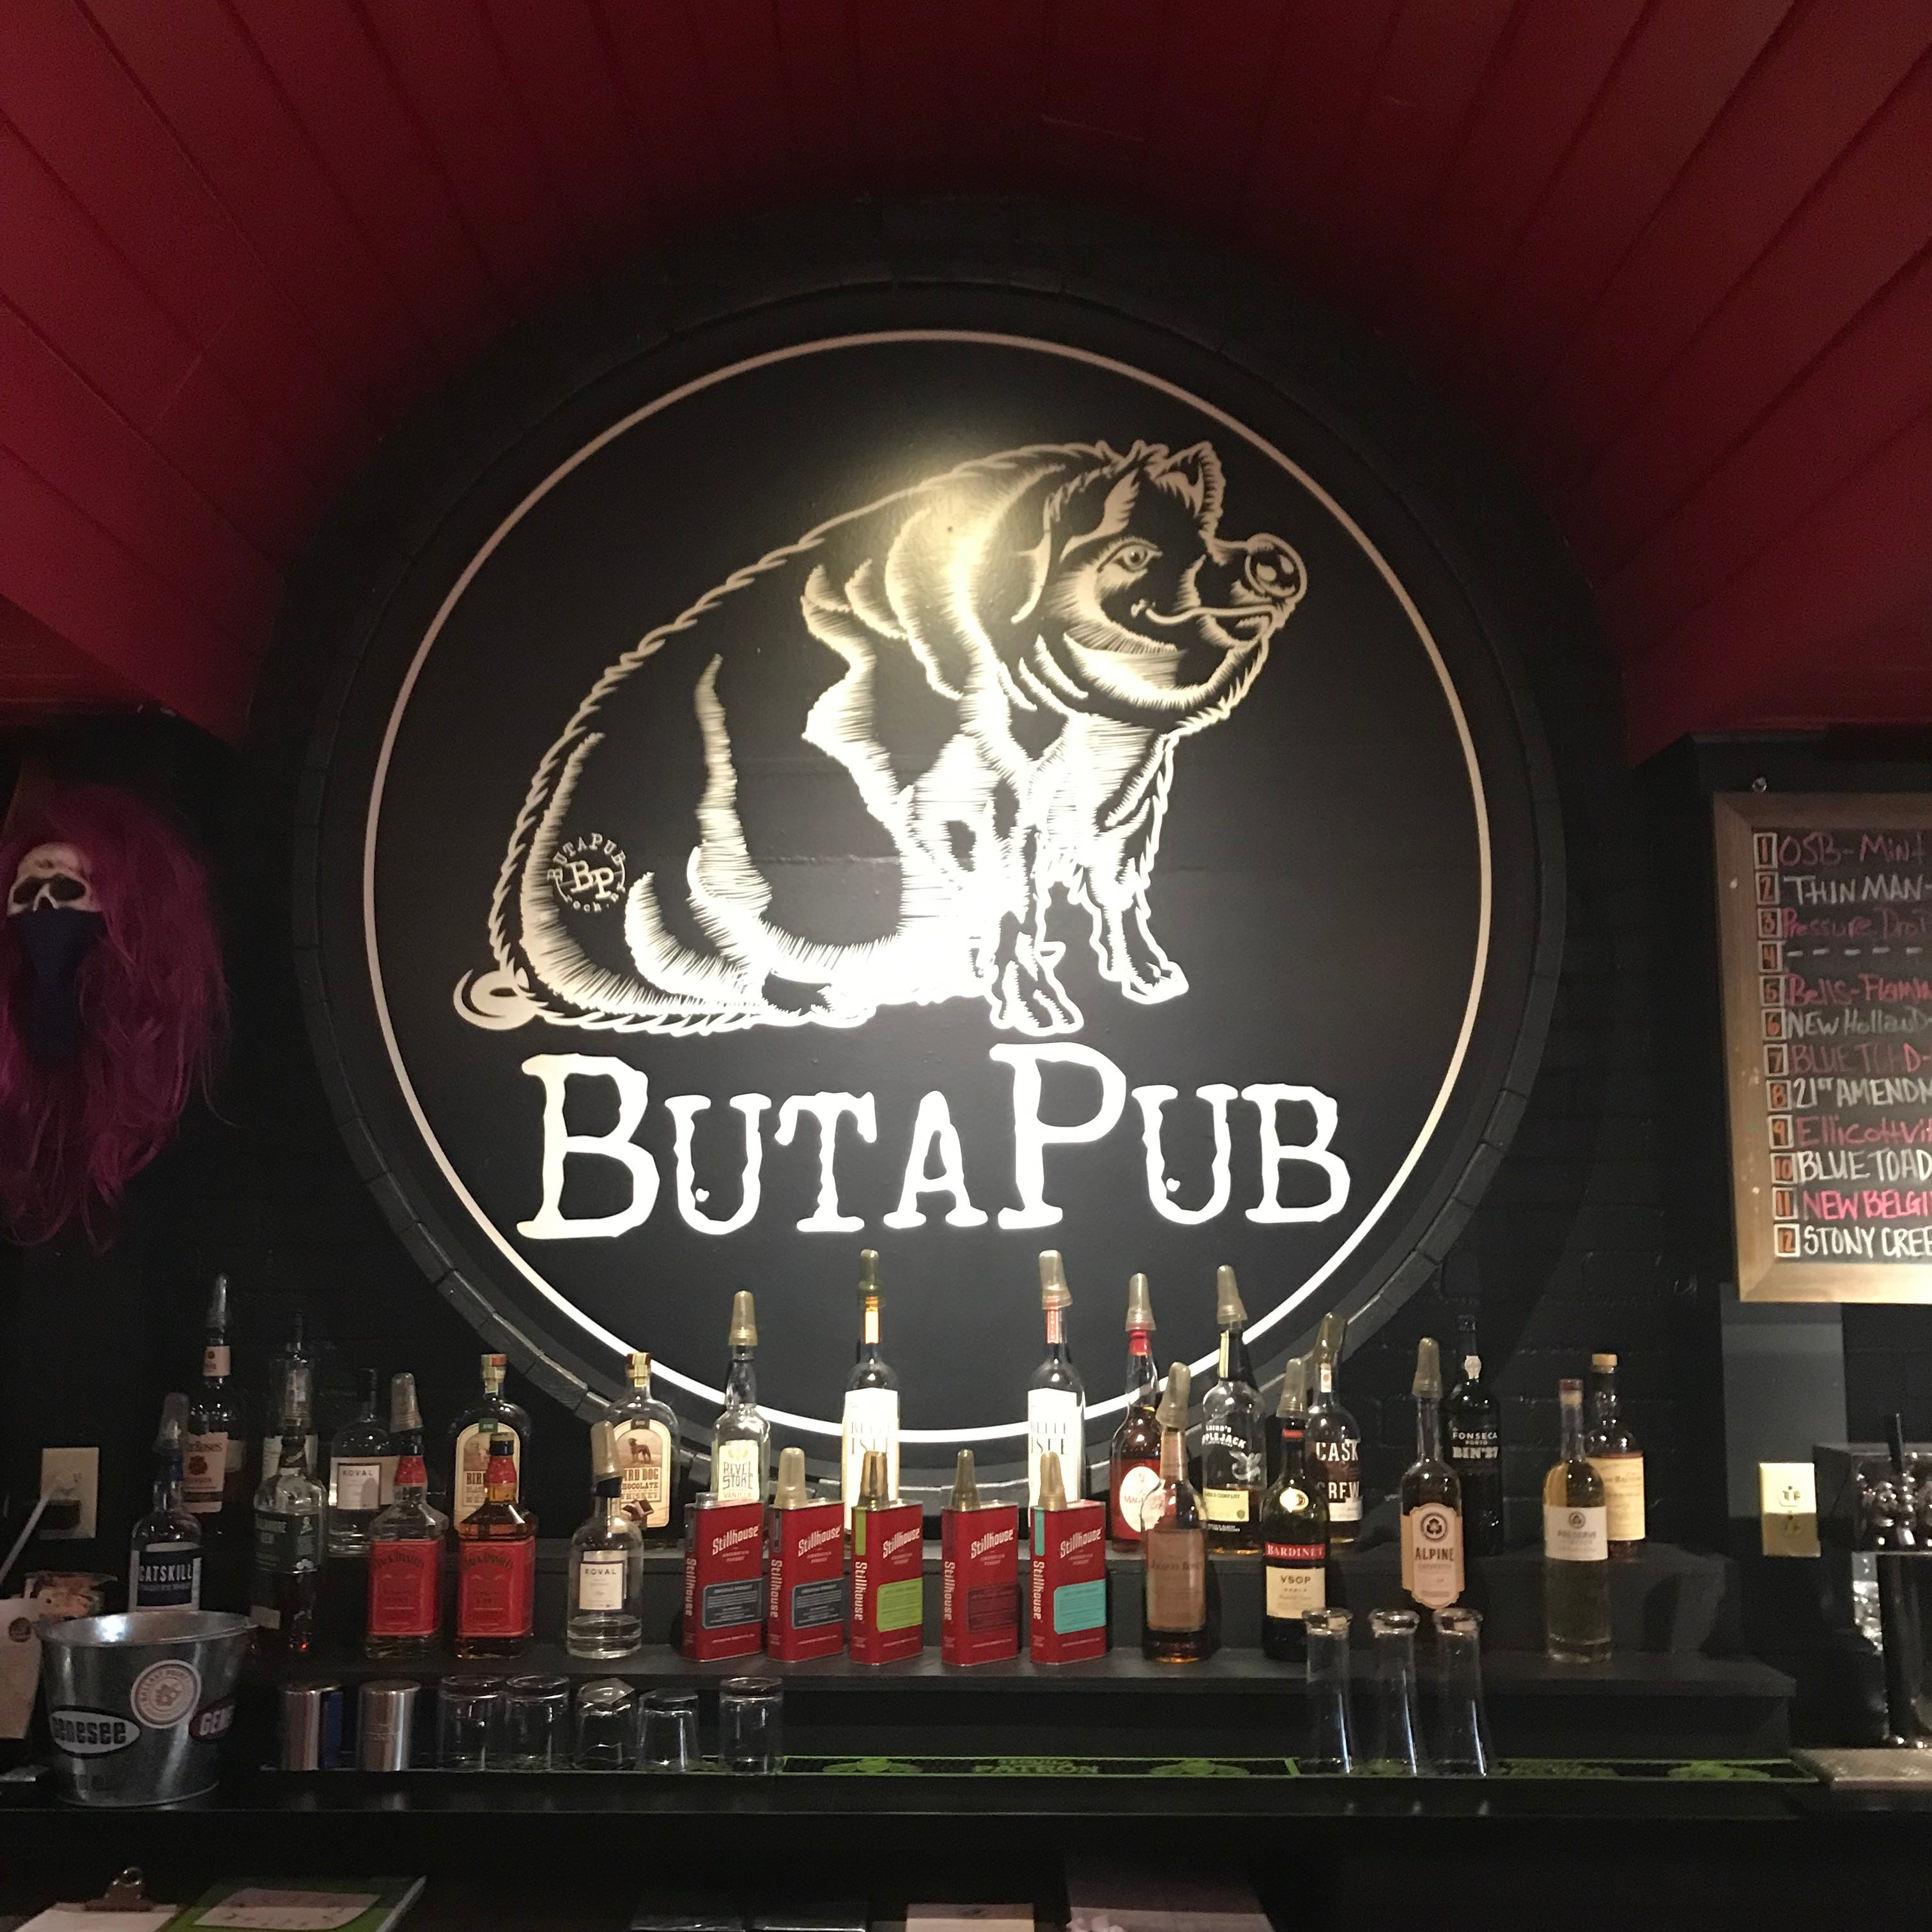 ButaPub restaurant to close in the South Wedge